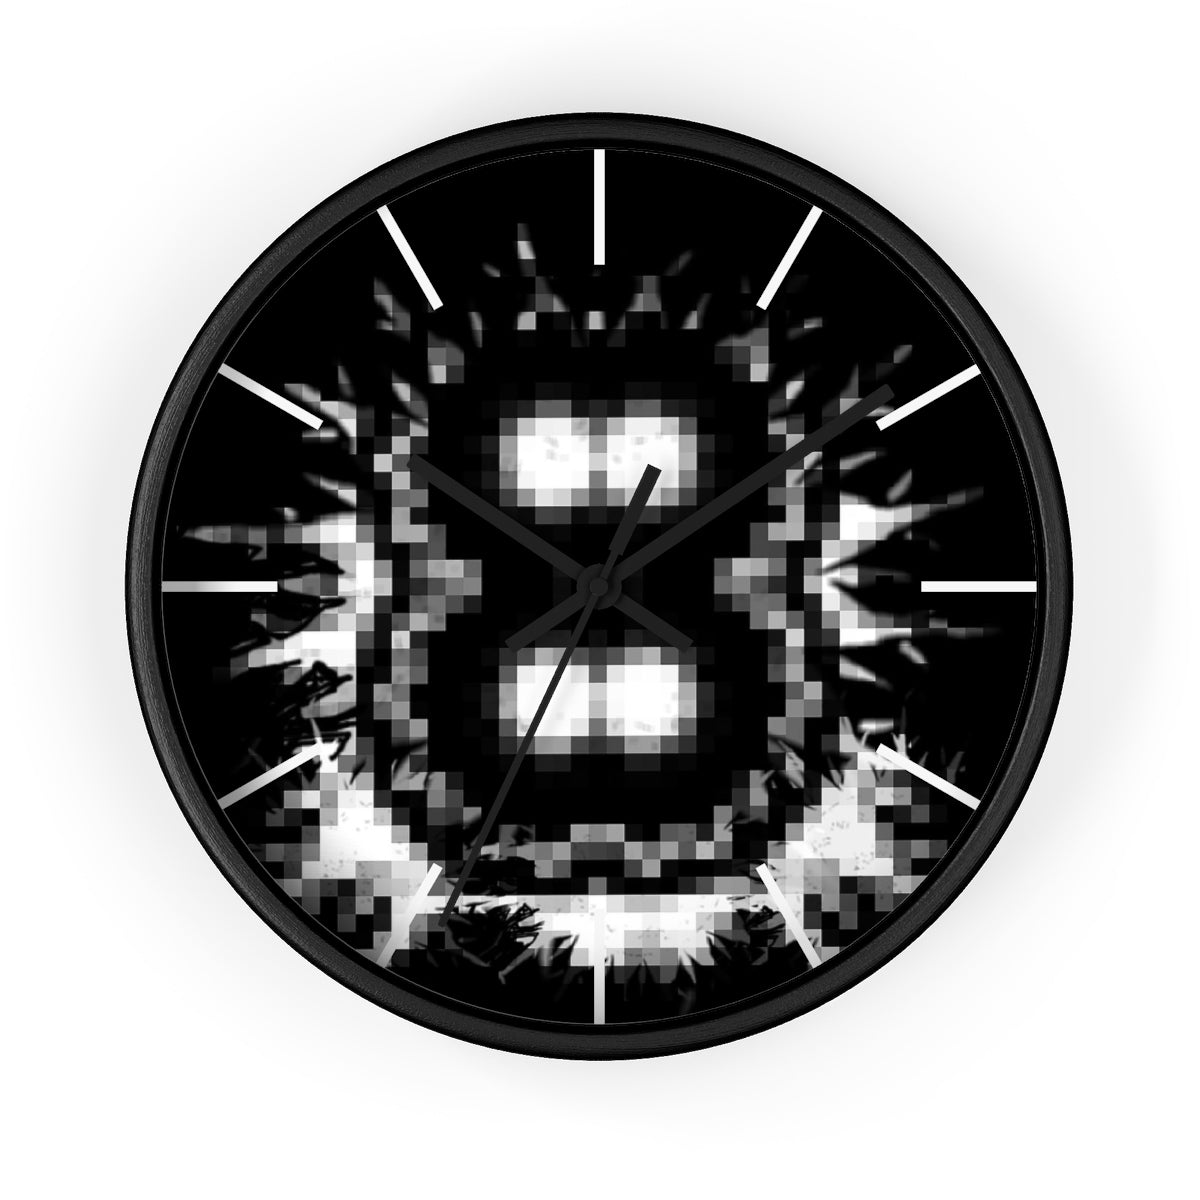 Wall Clock - Tea breaking up on cars ... | A Time Piece - Designed by @remlor - Remlor Art